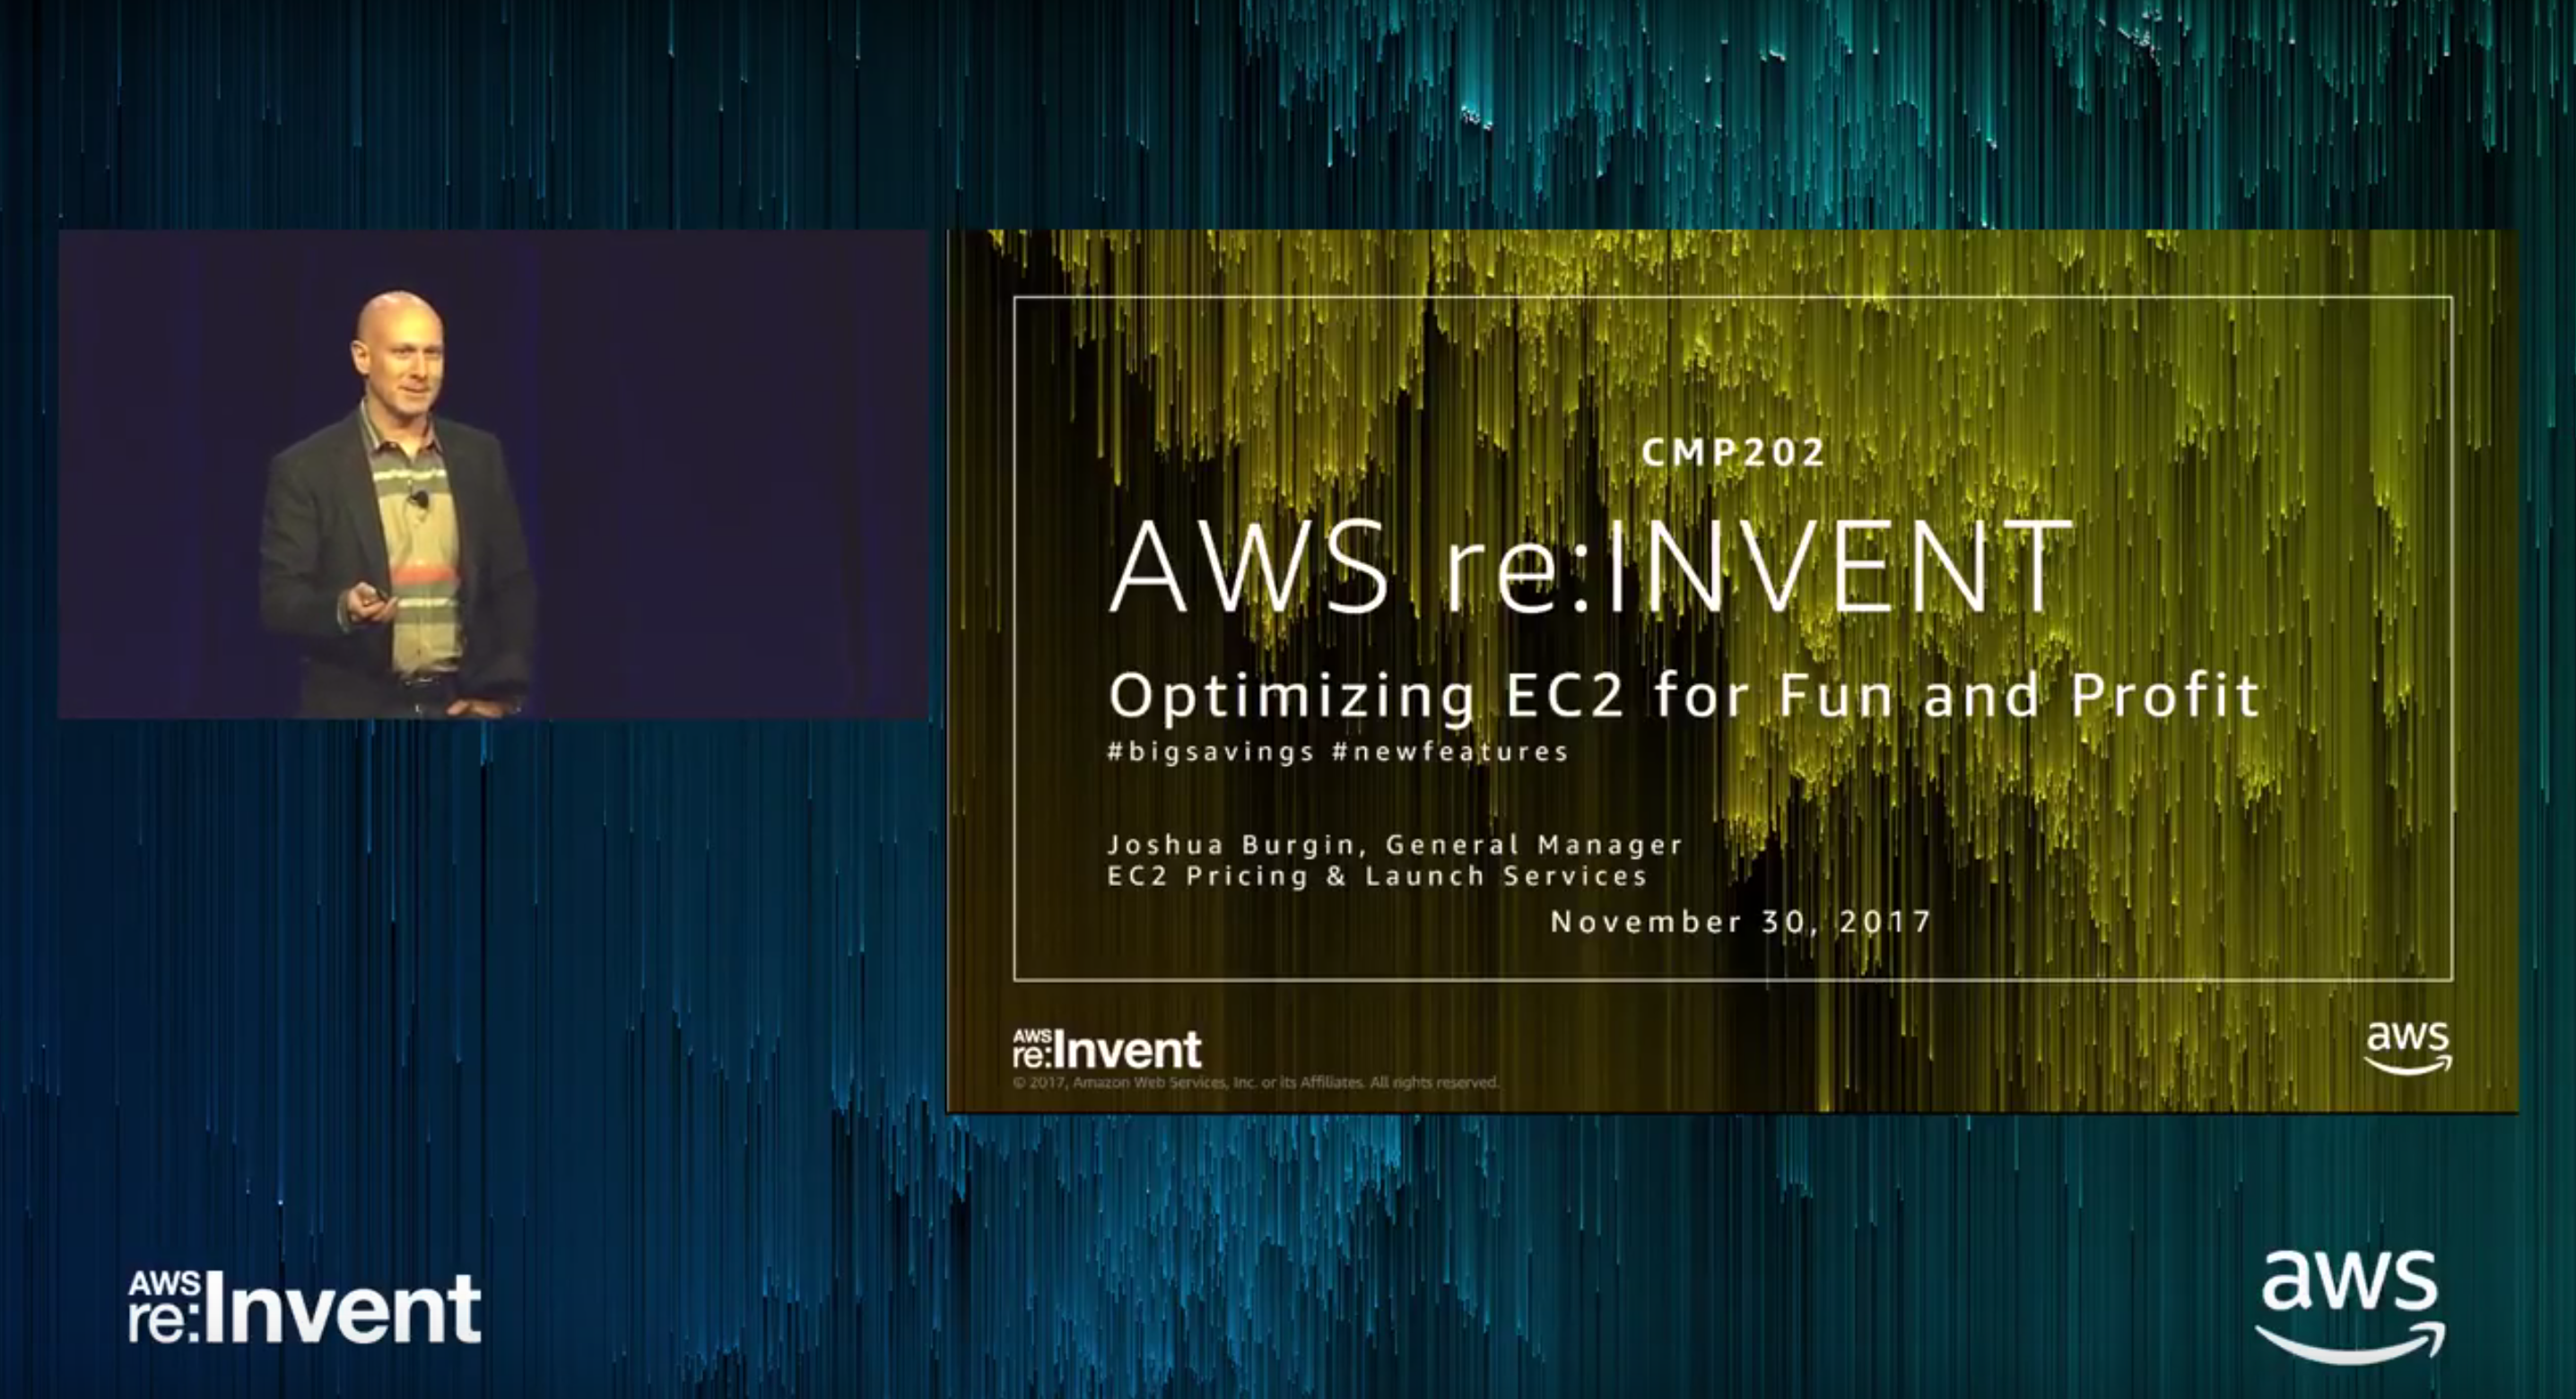 AWS reInvent 2017 - Optimizing EC2 for Fun and Profit